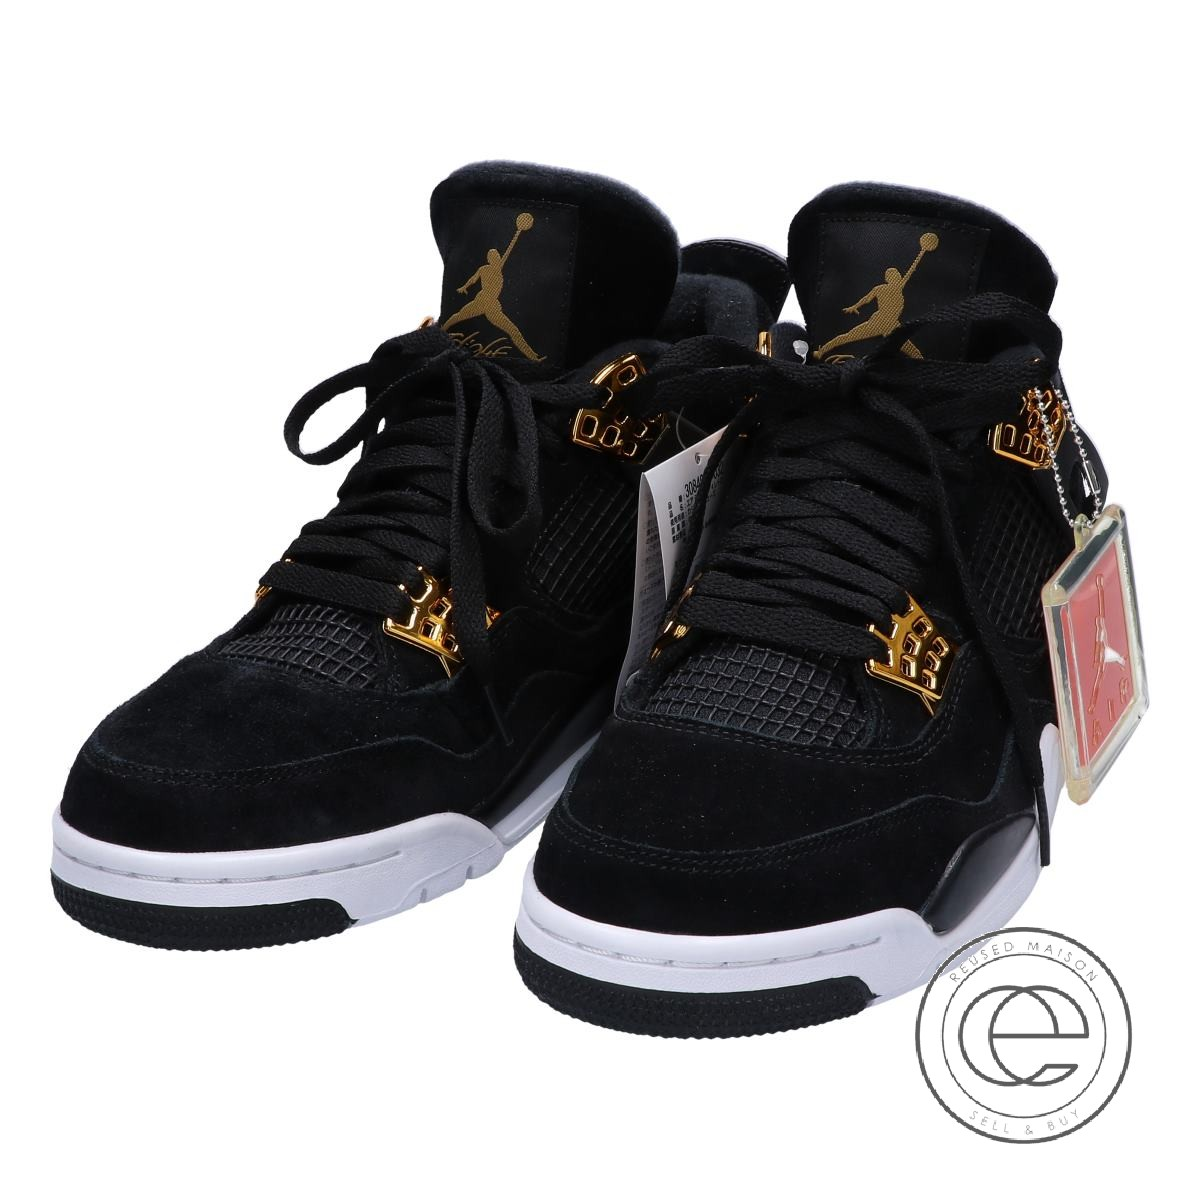 new concept 53a61 d19f1 NIKE Nike 308,497-032 AIR JORDAN 4 RETRO ROYALTY Air Jordan 4 nostalgic  royalty sneakers 26 BLACK/METALLIC GOLD-WHITE men